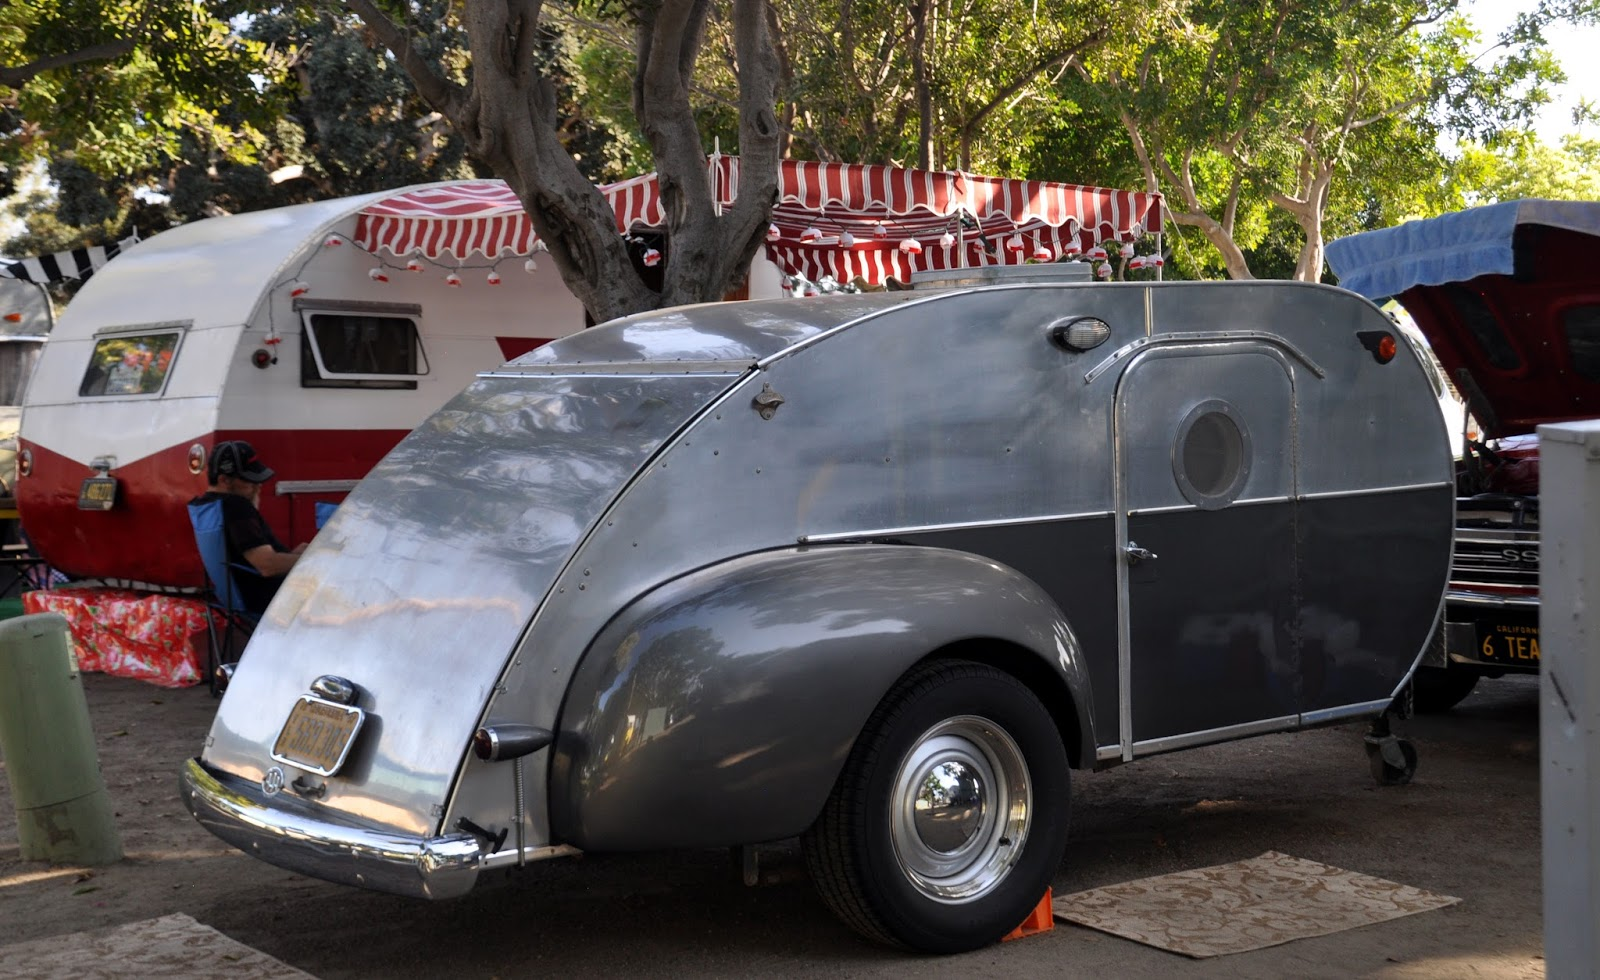 Just A Car Guy: a variety of teardrop trailers I came across